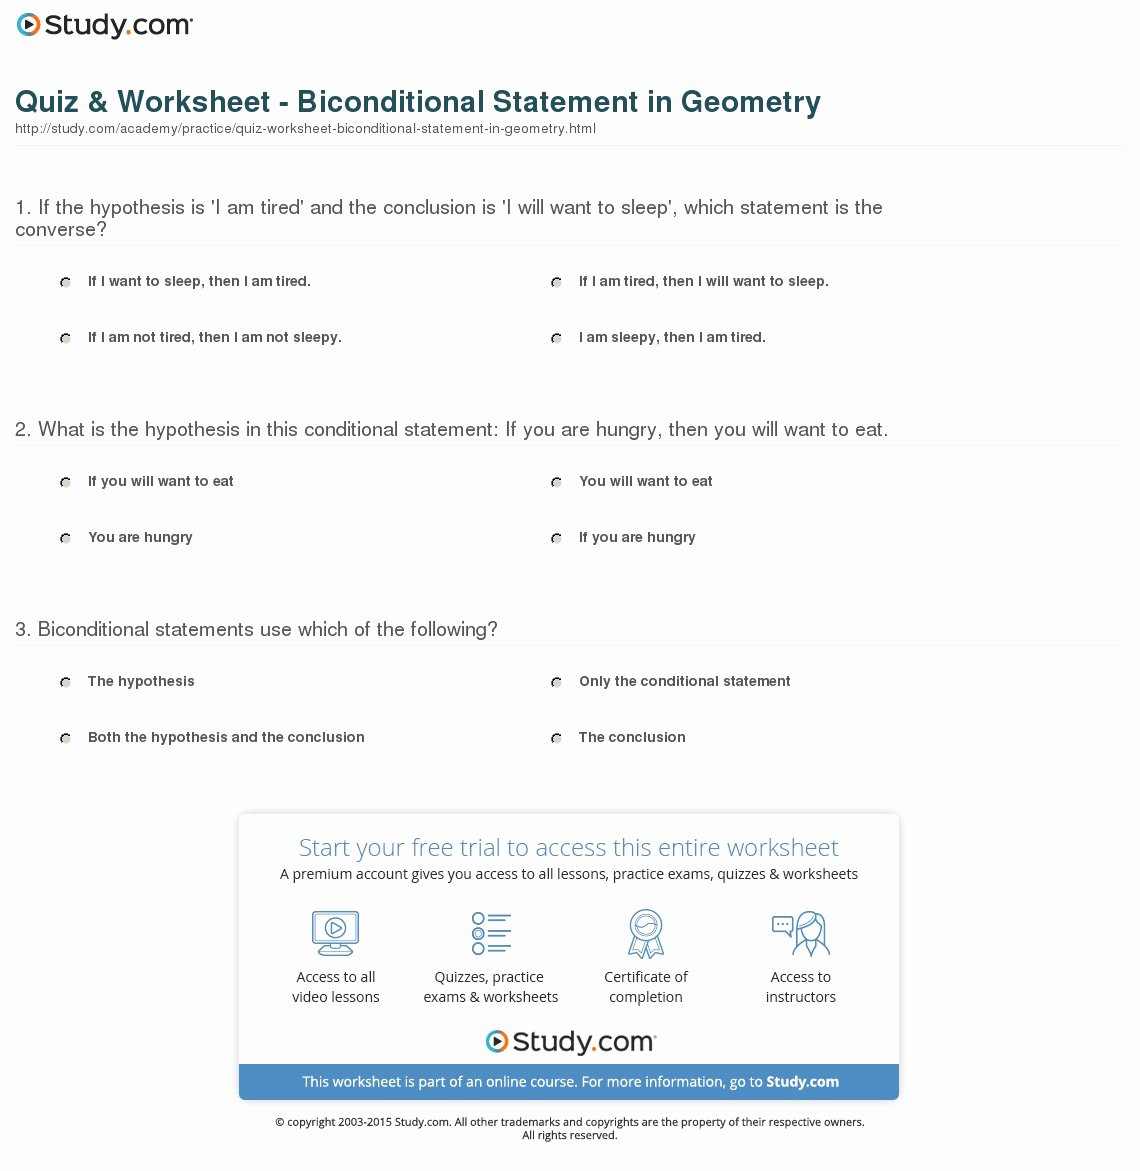 Conditional Statements Worksheet with Answers Fresh Quiz & Worksheet Biconditional Statement In Geometry